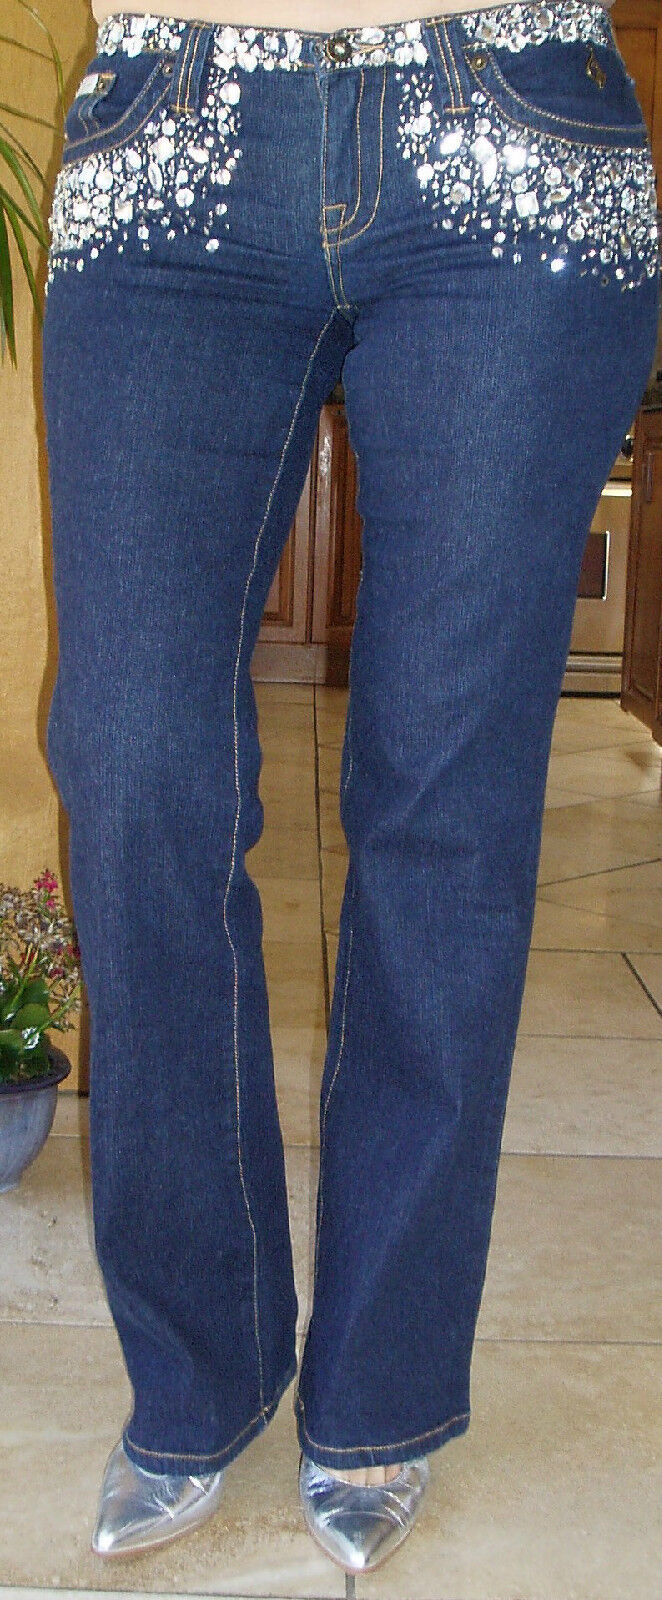 NWOT MSRP  225 AWESOME BABY PHAT S 3 JEWELED SEQUIN BEADED DARK blueE JEANS